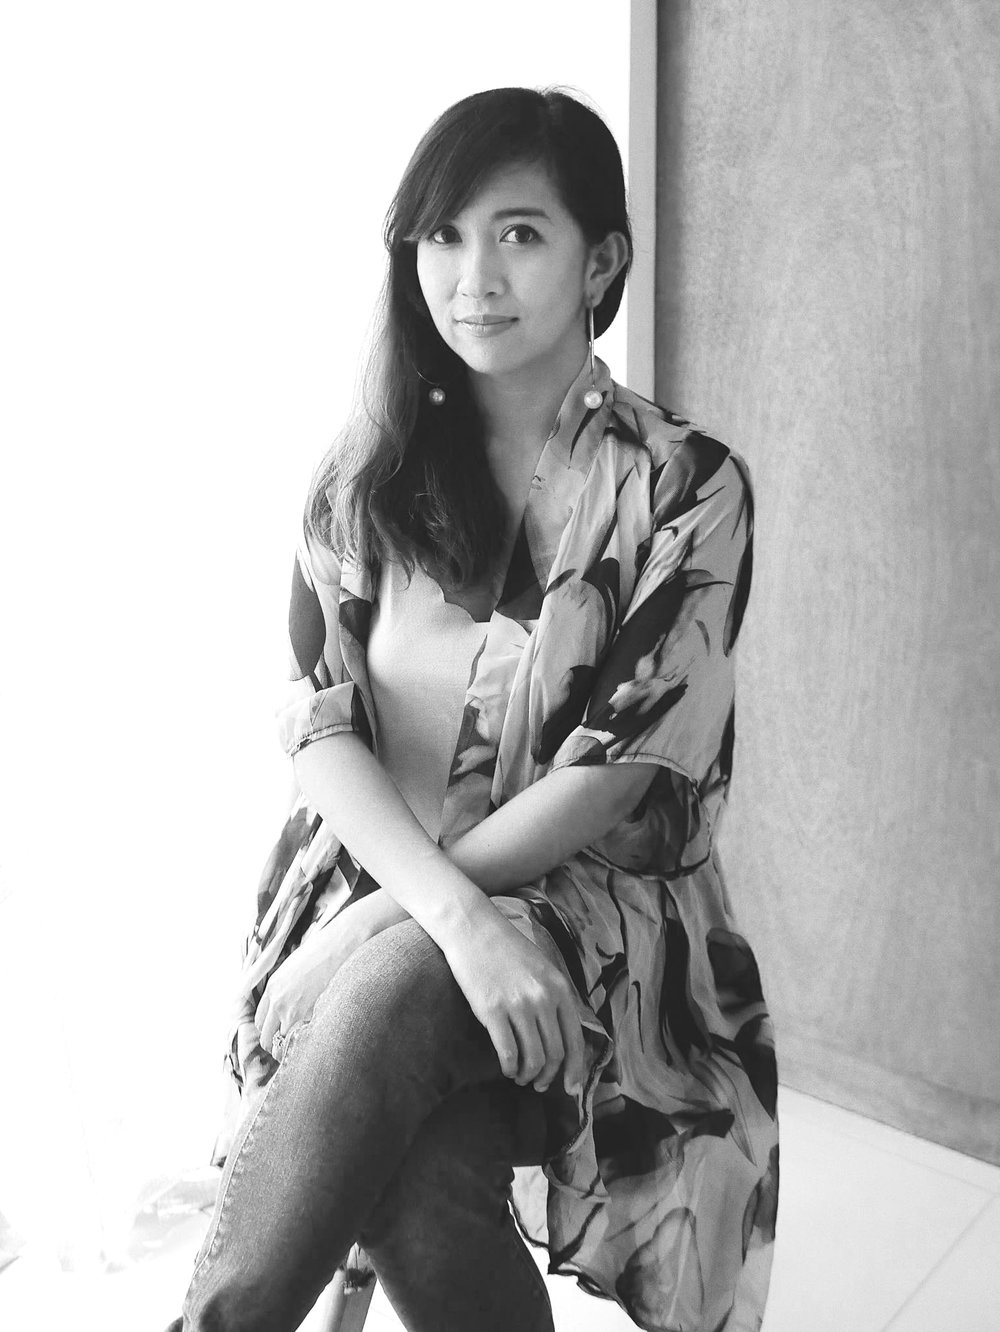 Catherine Cena - Founder, Interior DesignerCatherine Cena graduated from the Universityof the Philippines - Diliman with a degree in BS Interior Design, and ranked 7th in the nation during the 2009 Interior Design Licensure examinations. Since then, she has been consistently featured in publications as one of the top young designers in the country.Before she established Catherine Cena Interiors, she worked for a Manila based Architecturalfirm where she trained in designing residential, commercial and hospitality projects as the firm's senior interior designer. Since then, she has focused primarily on residential design, with the realization that the heart is in the home, and that having well designed homes have a great effect on the well-being of people. With this in mind, she has been consistently trying to expand on and improve her craft by providing personalized, well thought out, livable interior designs to her clients.